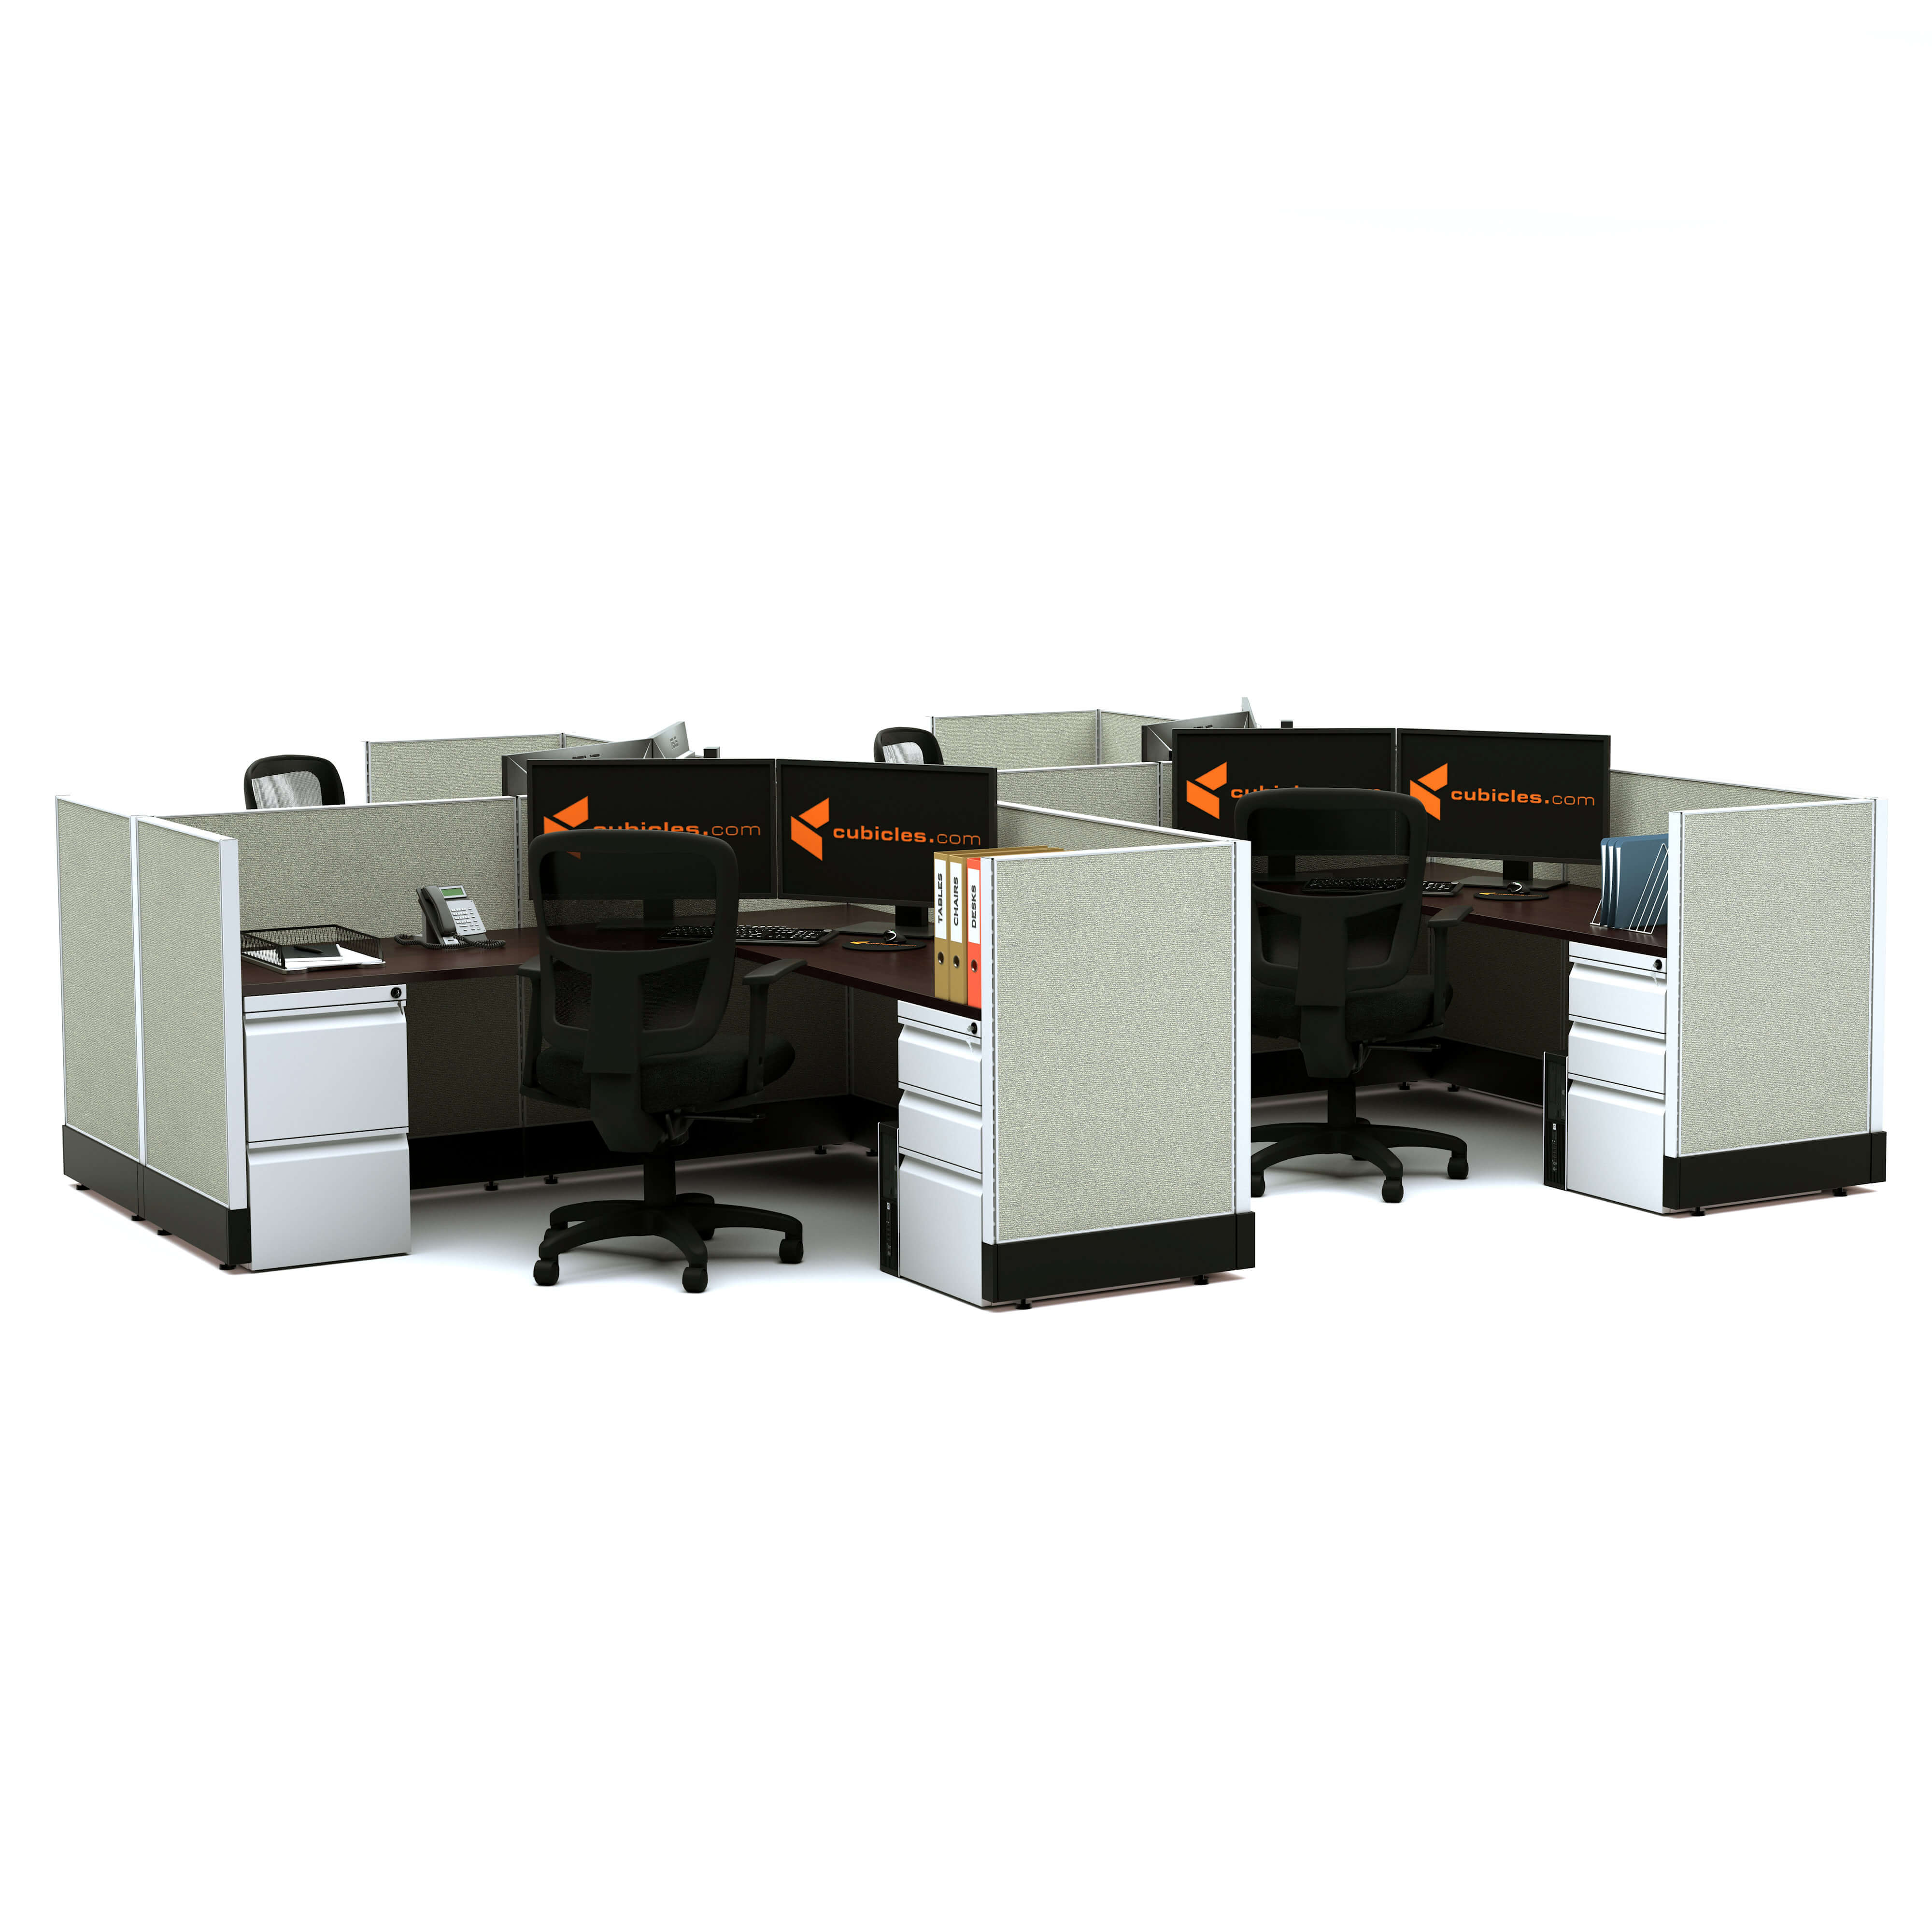 modular-office-furniture-system-furniture-39-4pack-clustered-powered.jpg